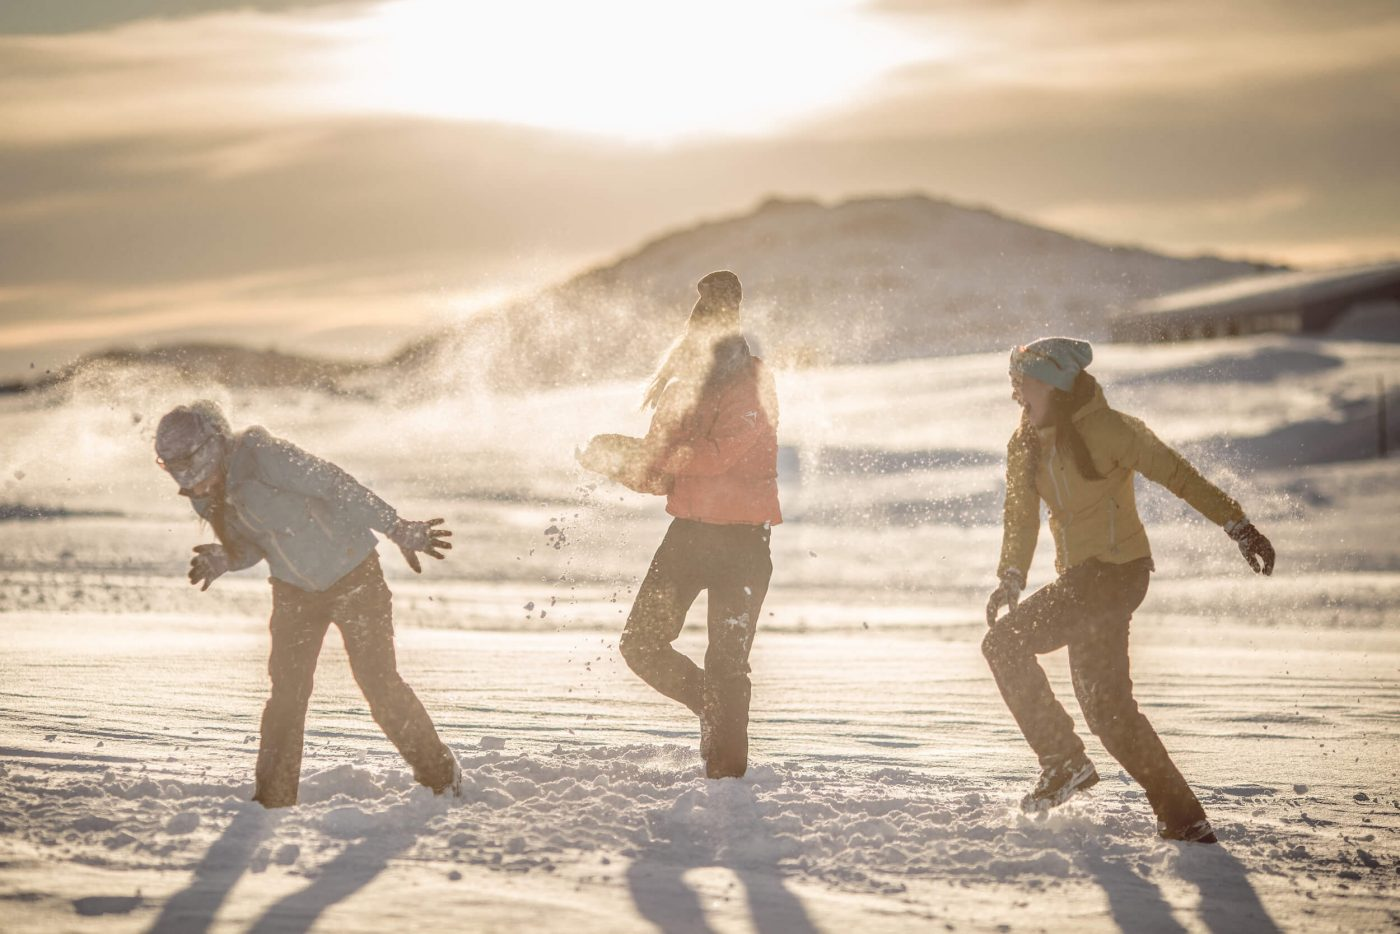 A sunset snowball fight in Kulusuk in East Greenland. Photo by Mads Pihl